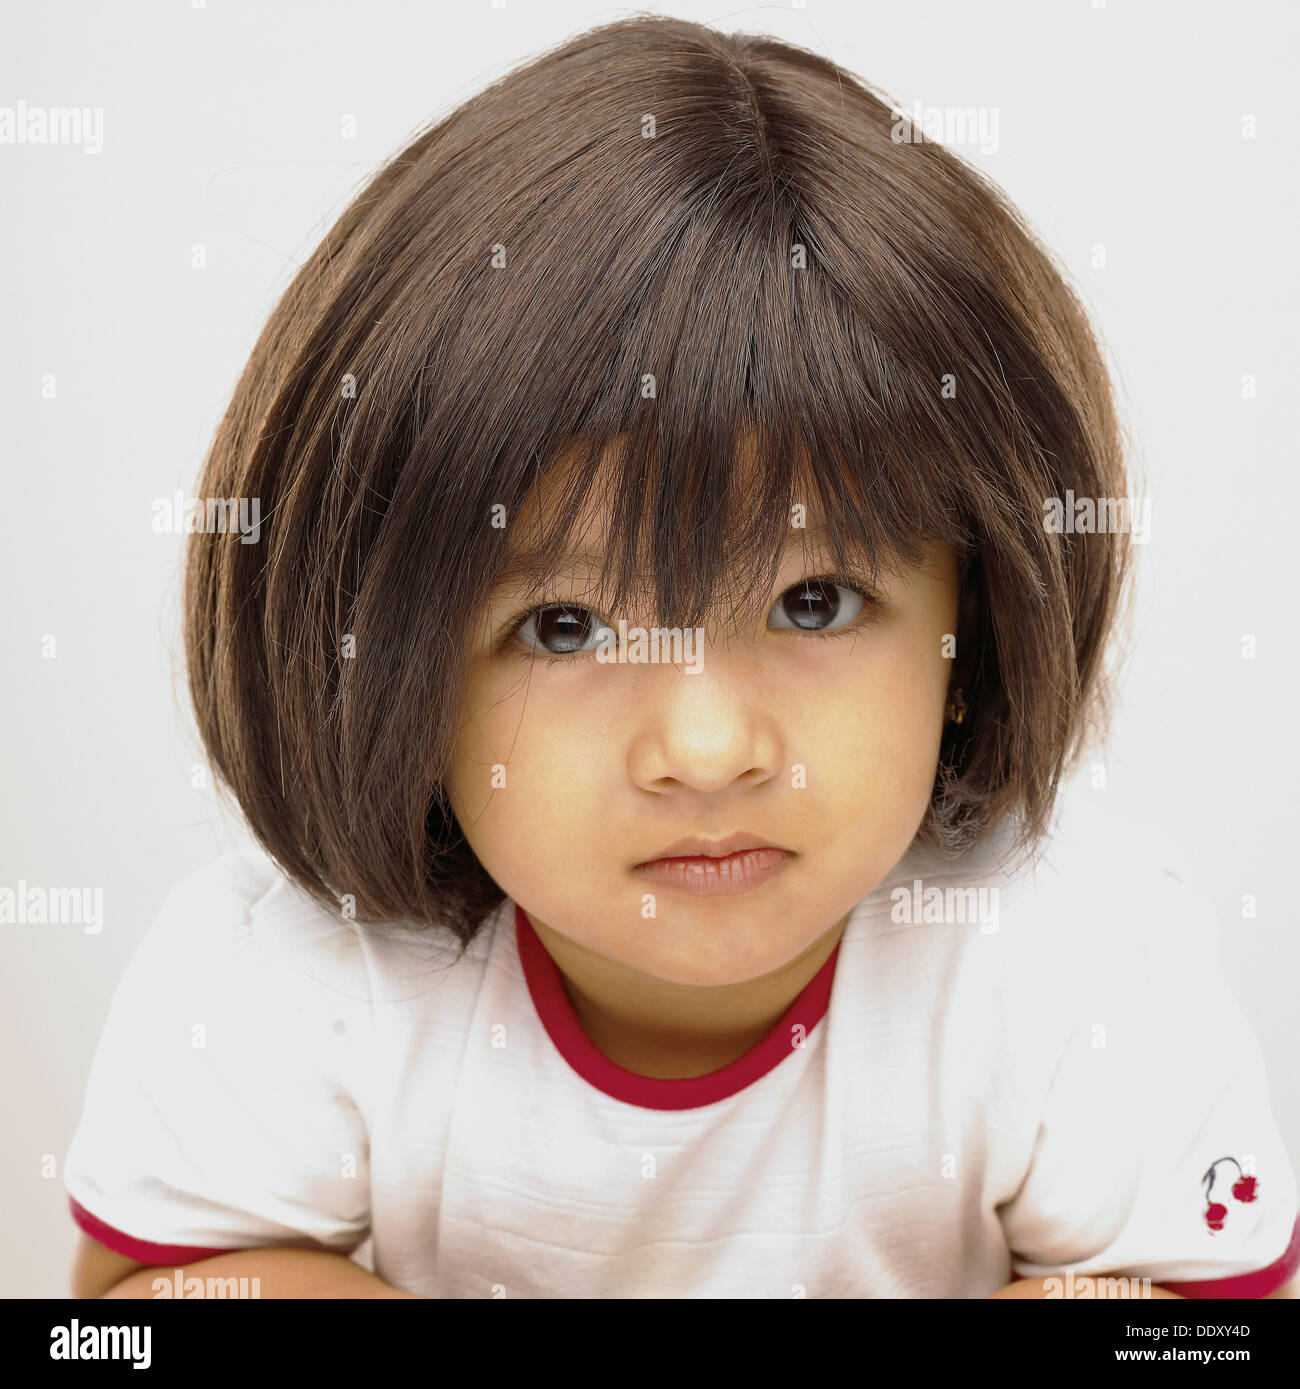 Indian baby girl 30 years wearing a wig Stock Photo - Alamy